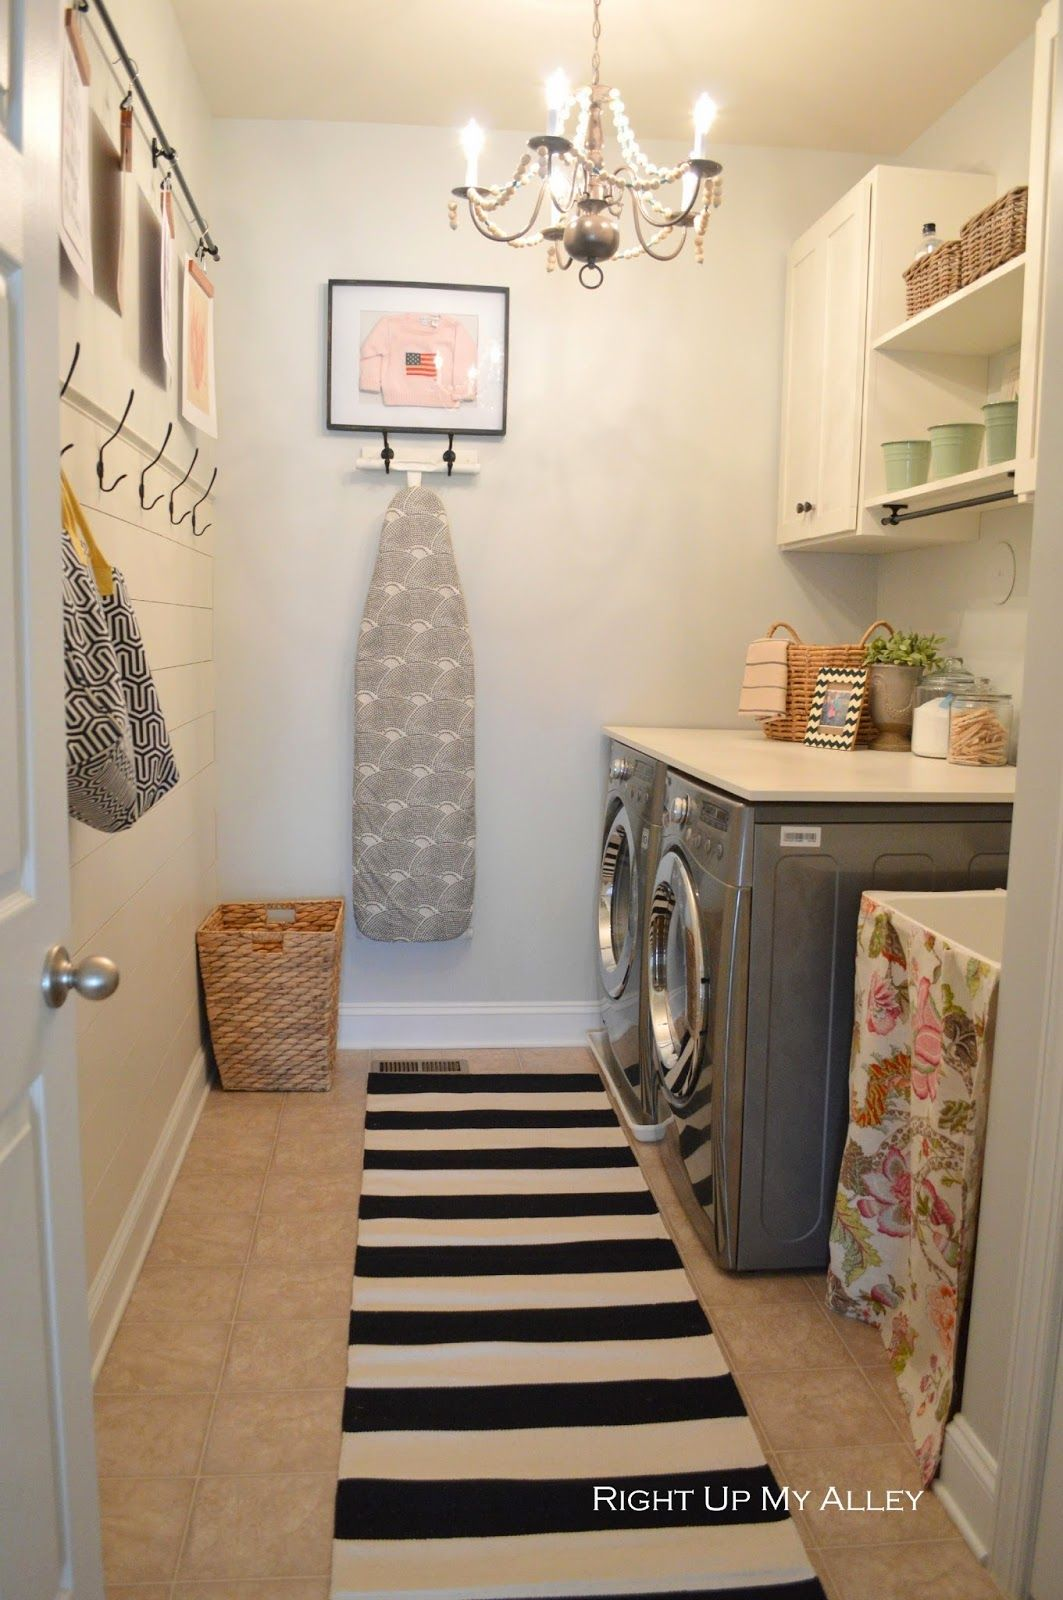 Make Your Home Look Great With These Great Tips For More Information Visit Image Link 101 Laundry Room Design Laundry Mud Room Laundry Room Organization